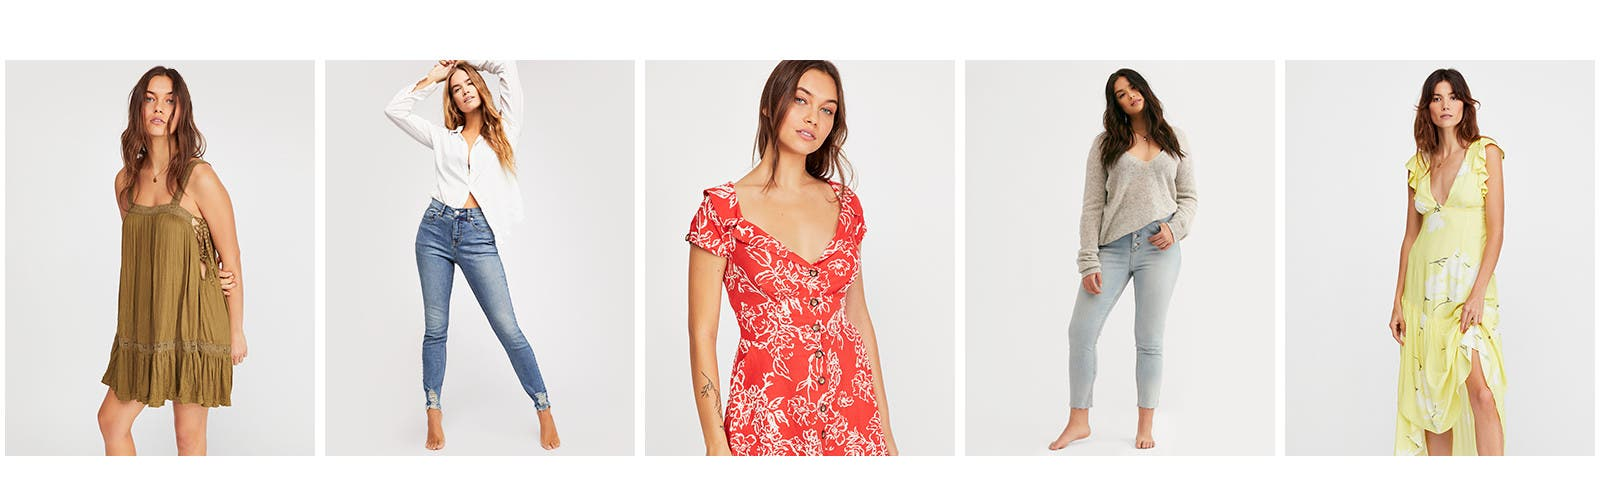 b6a5efc80a9 Spring Fever  New Arrivals in Full Bloom. Free People New Arrivals